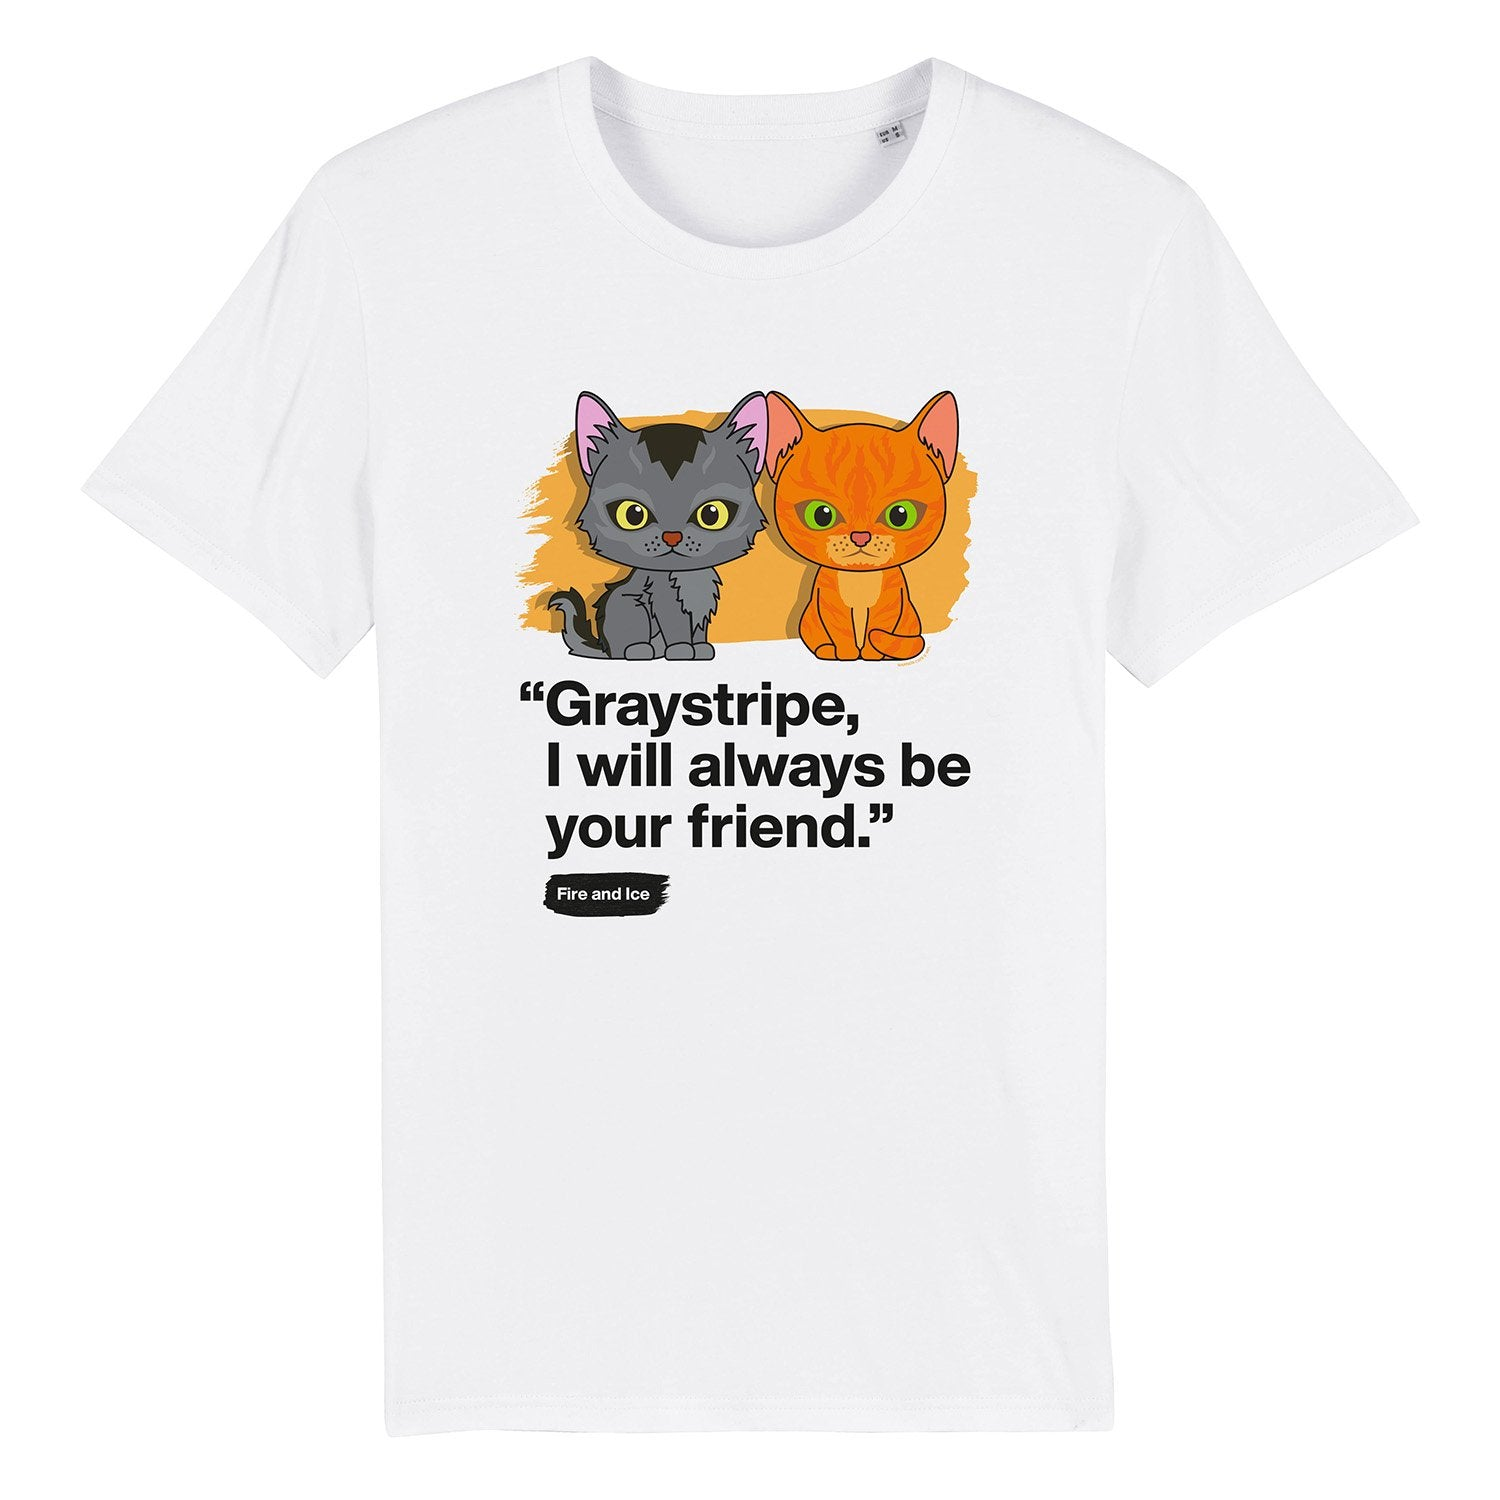 Always be your friend - Graystripe & Firestar - Youth Unisex T-Shirt